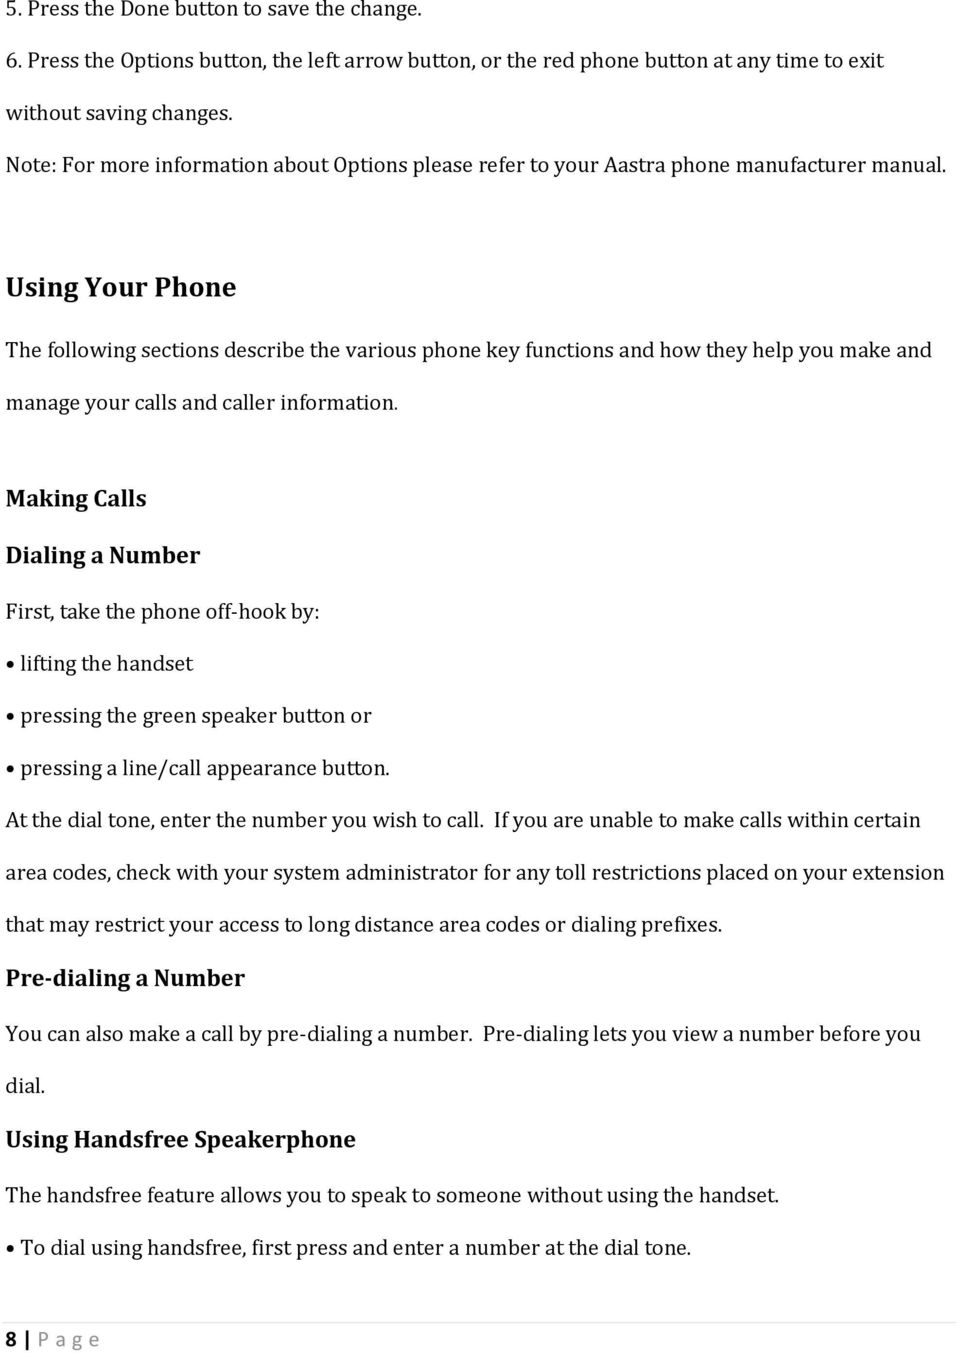 Using Your Phone The following sections describe the various phone key functions and how they help you make and manage your calls and caller information.